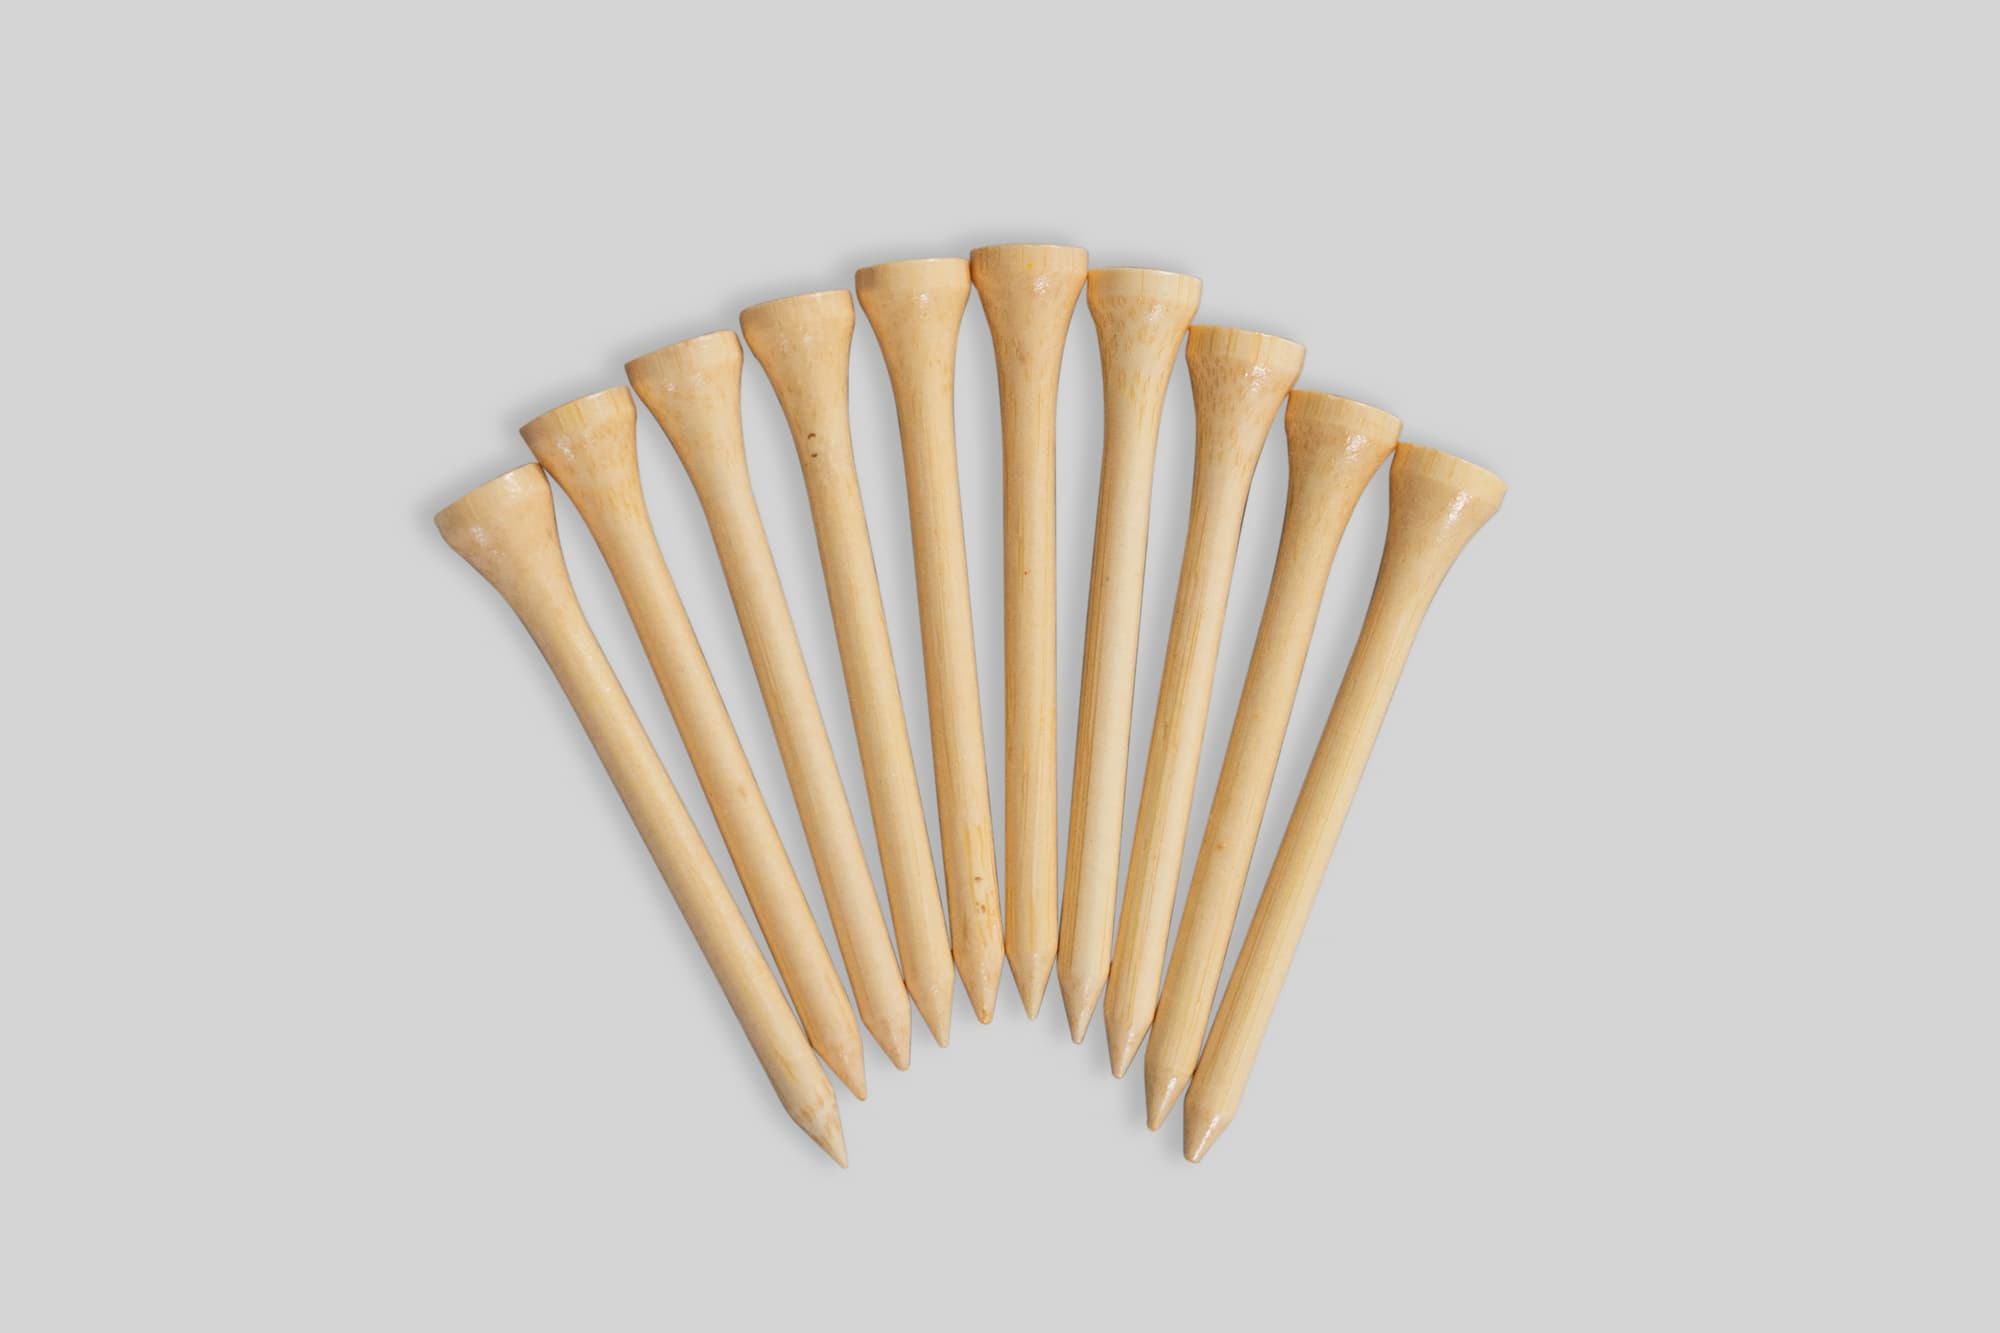 Bamboo Golf Tees in an arched line